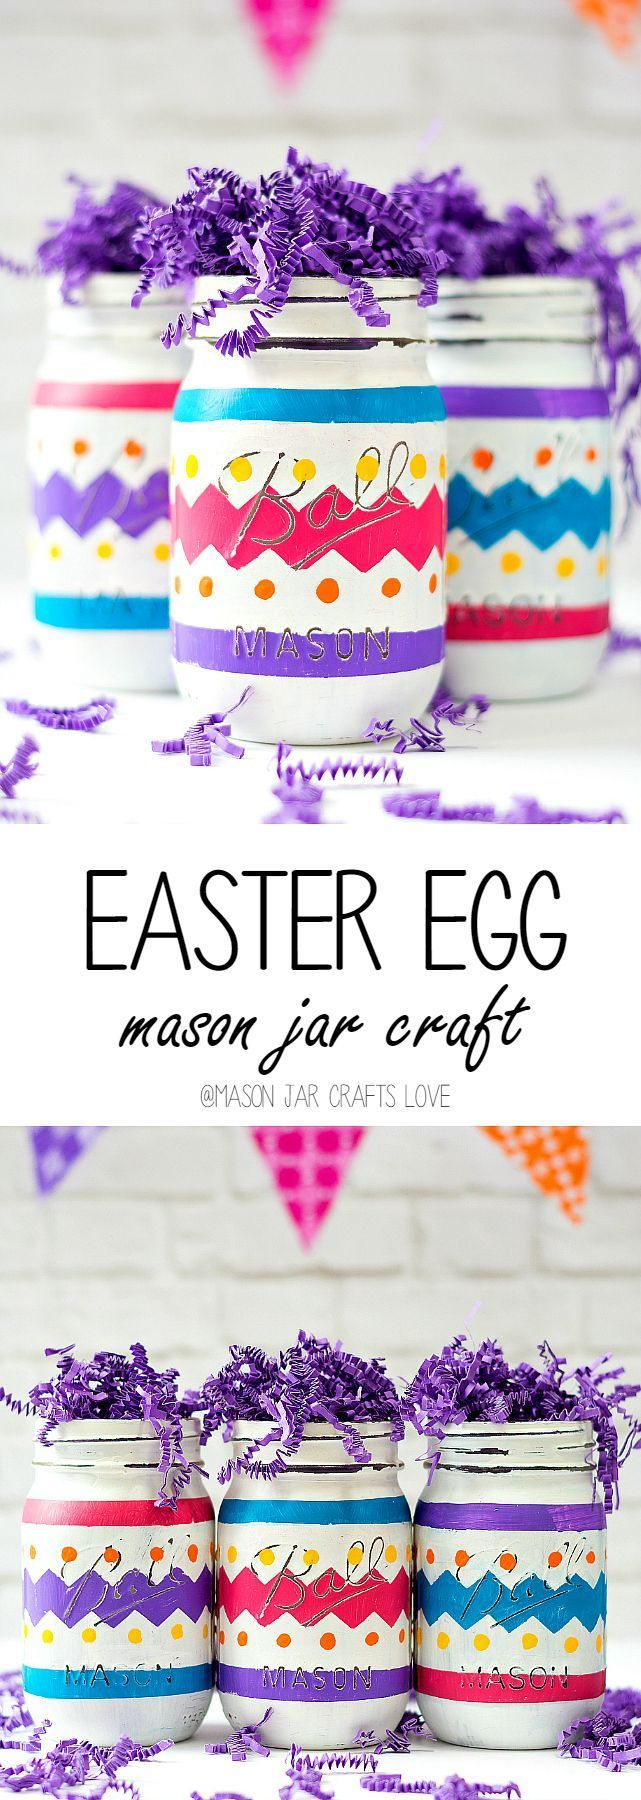 Easter Egg Mason Jar Craft | Pretty painted jars for spring DiY and crafting